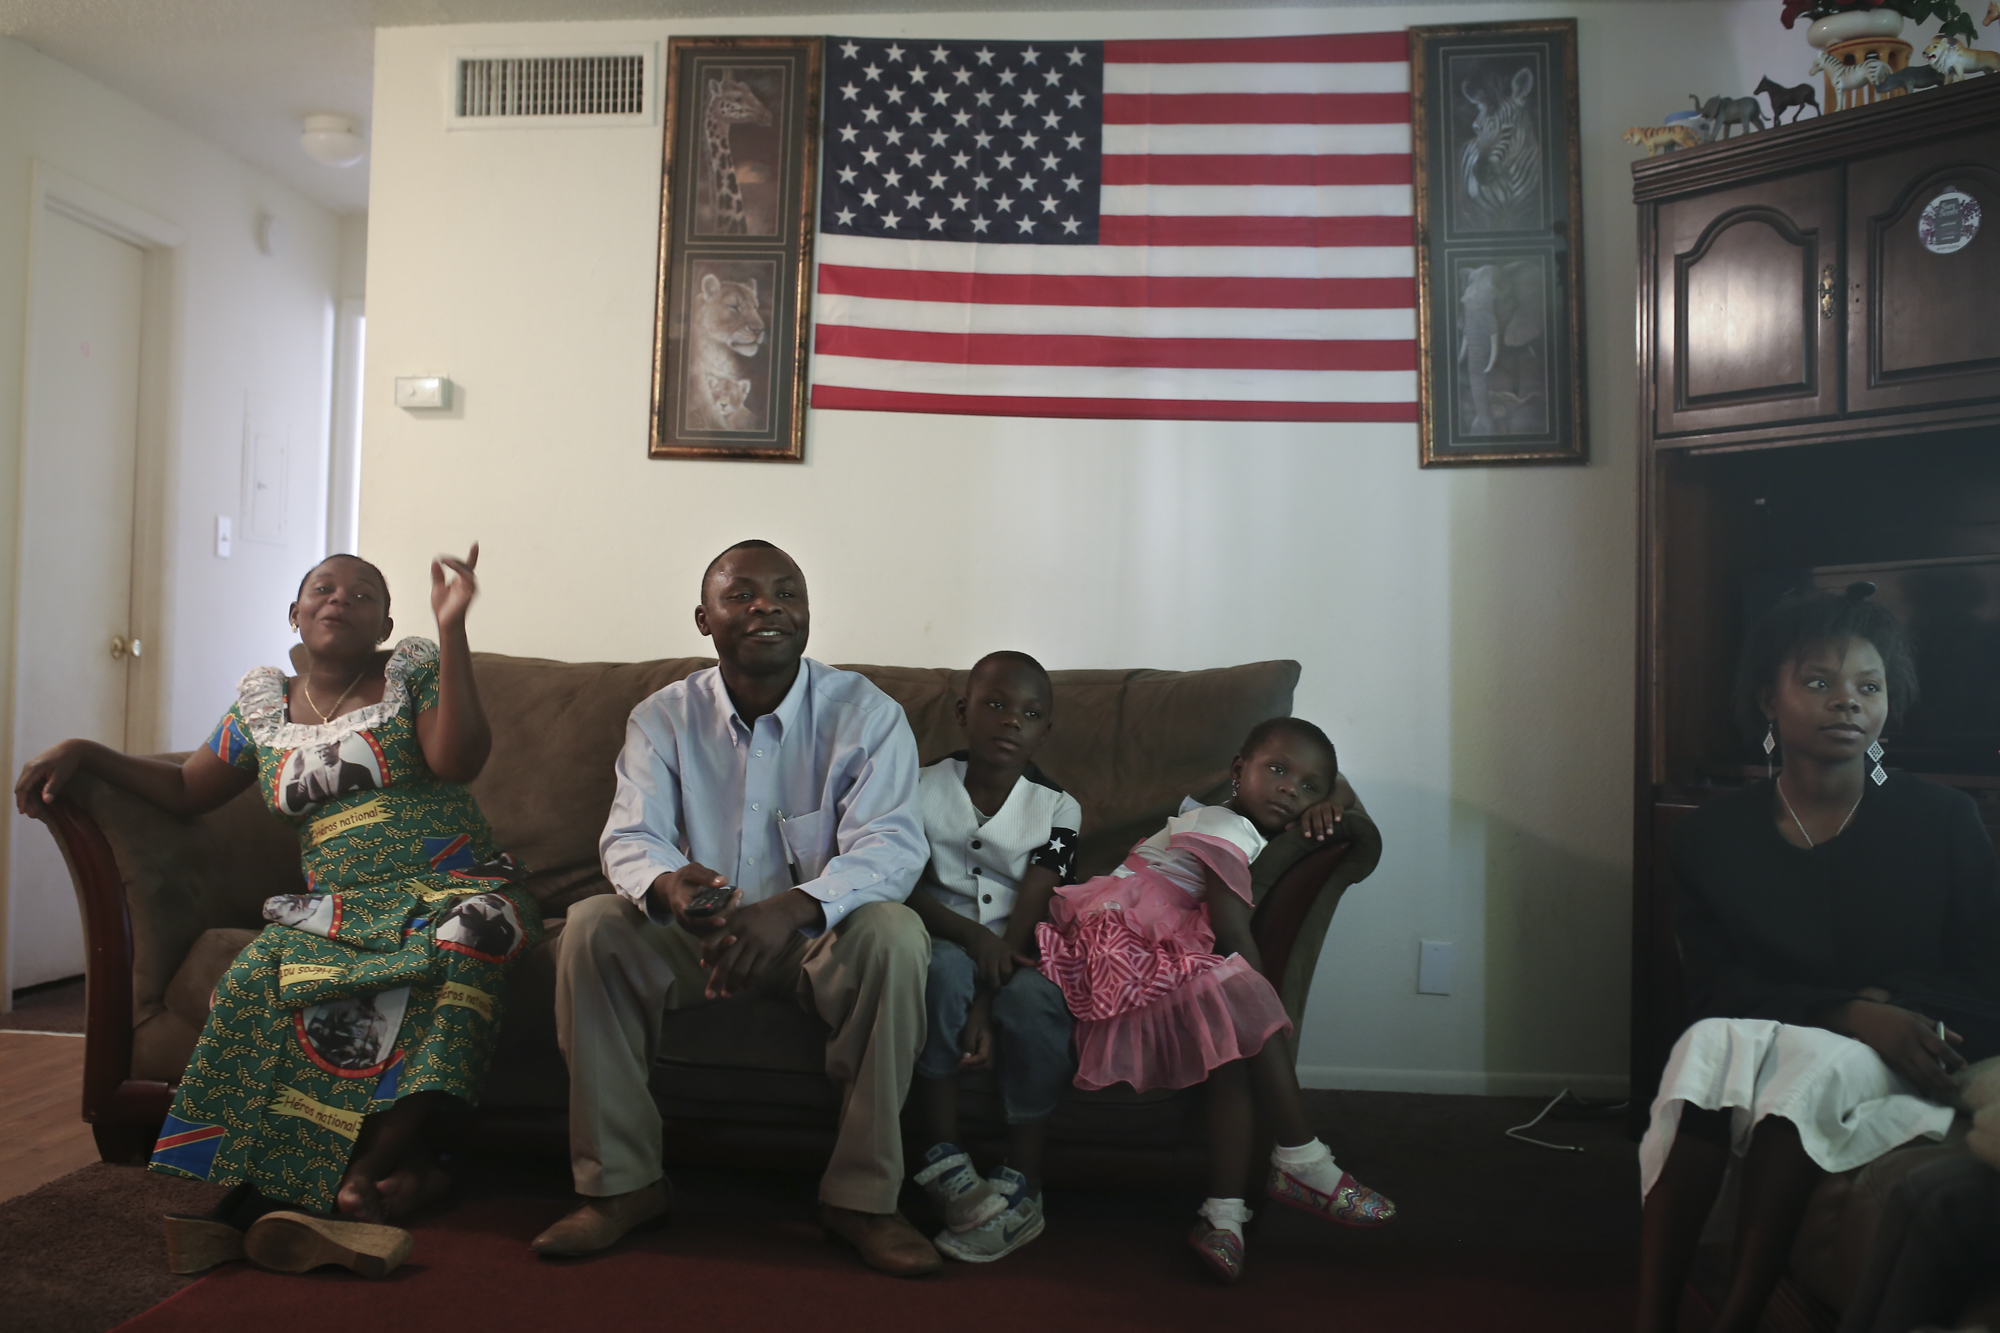 Sadiki Bertin (second to left) spends part of Mother's Day with his wife, Cecilia Kashindi Charlotte, 30 and children, Desire, 11, Mary, 6 and niece, Geannete Echa, 17, (from left) at a neighbor's home in Tampa, Fla. Their direction is focused on the TV, watching Youtube videos of a Congolese gathering in Buffalo, NY where many of their friends resettled.